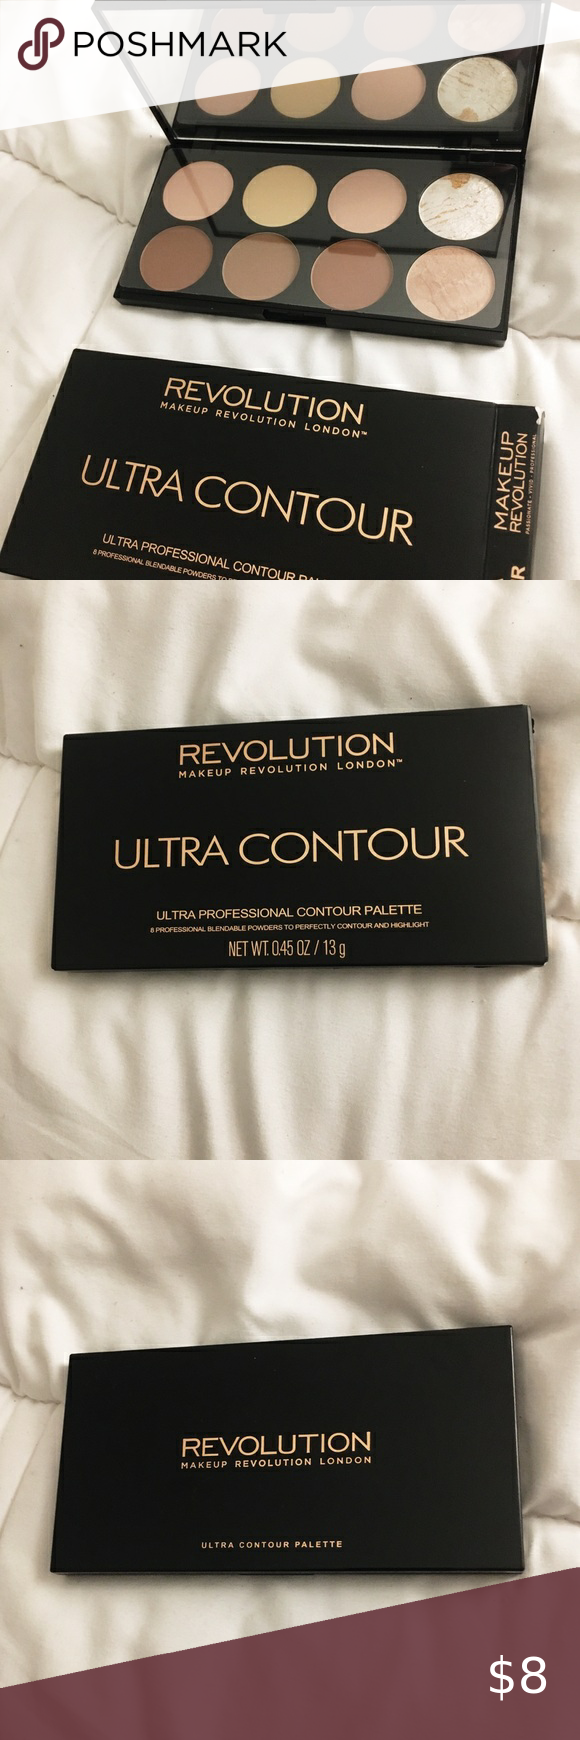 Makeup Revolution Ultra Contour Palette NWT in 2020